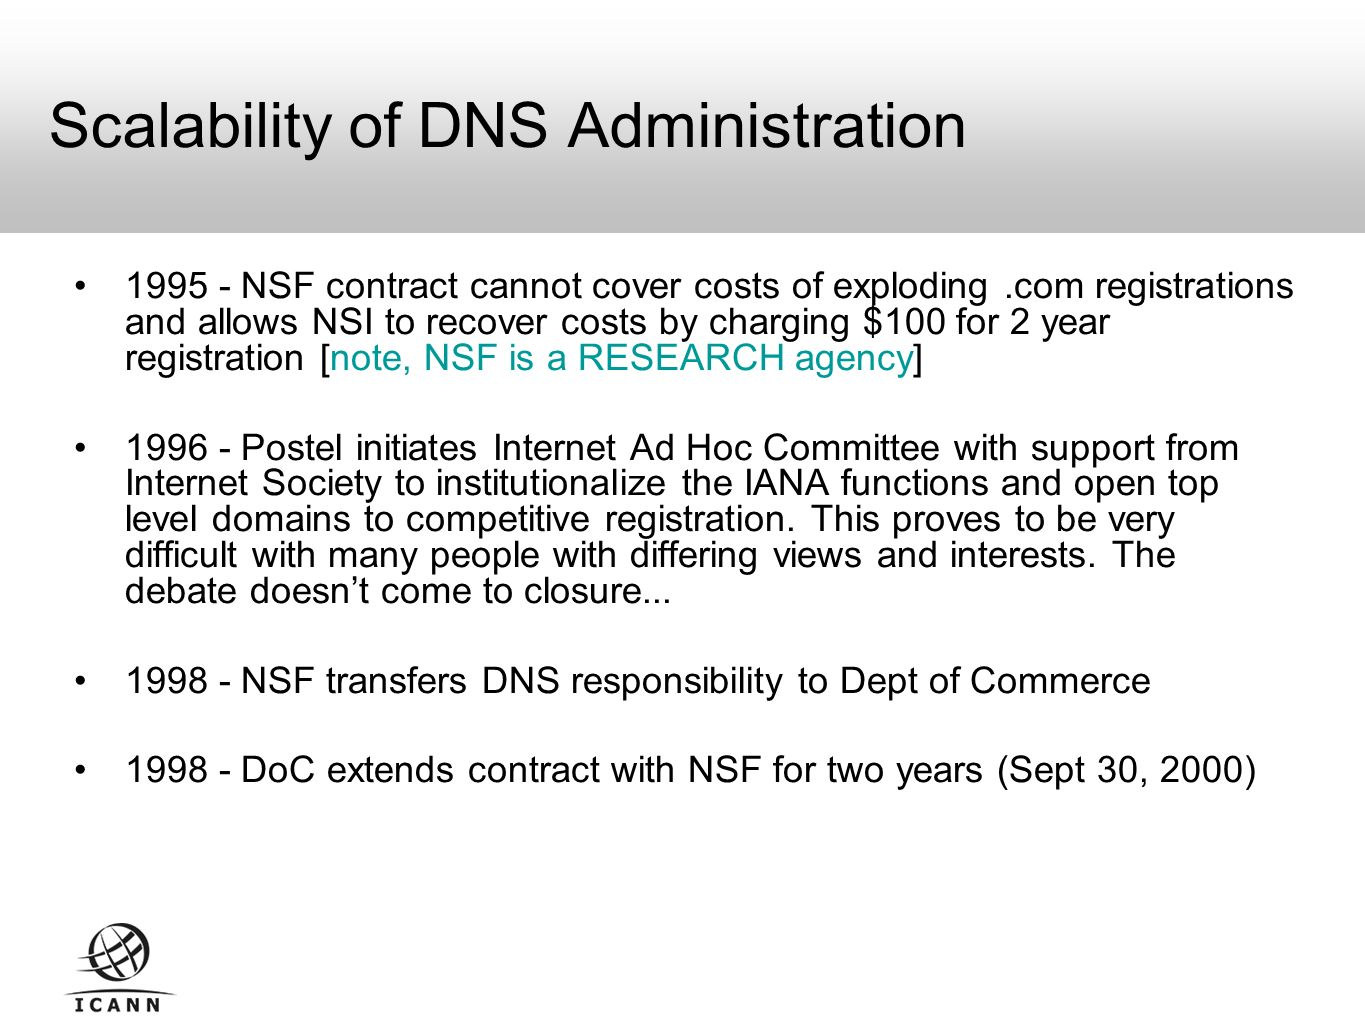 Scalability of DNS Administration NSF contract cannot cover costs of exploding.com registrations and allows NSI to recover costs by charging $100 for 2 year registration [note, NSF is a RESEARCH agency] Postel initiates Internet Ad Hoc Committee with support from Internet Society to institutionalize the IANA functions and open top level domains to competitive registration.